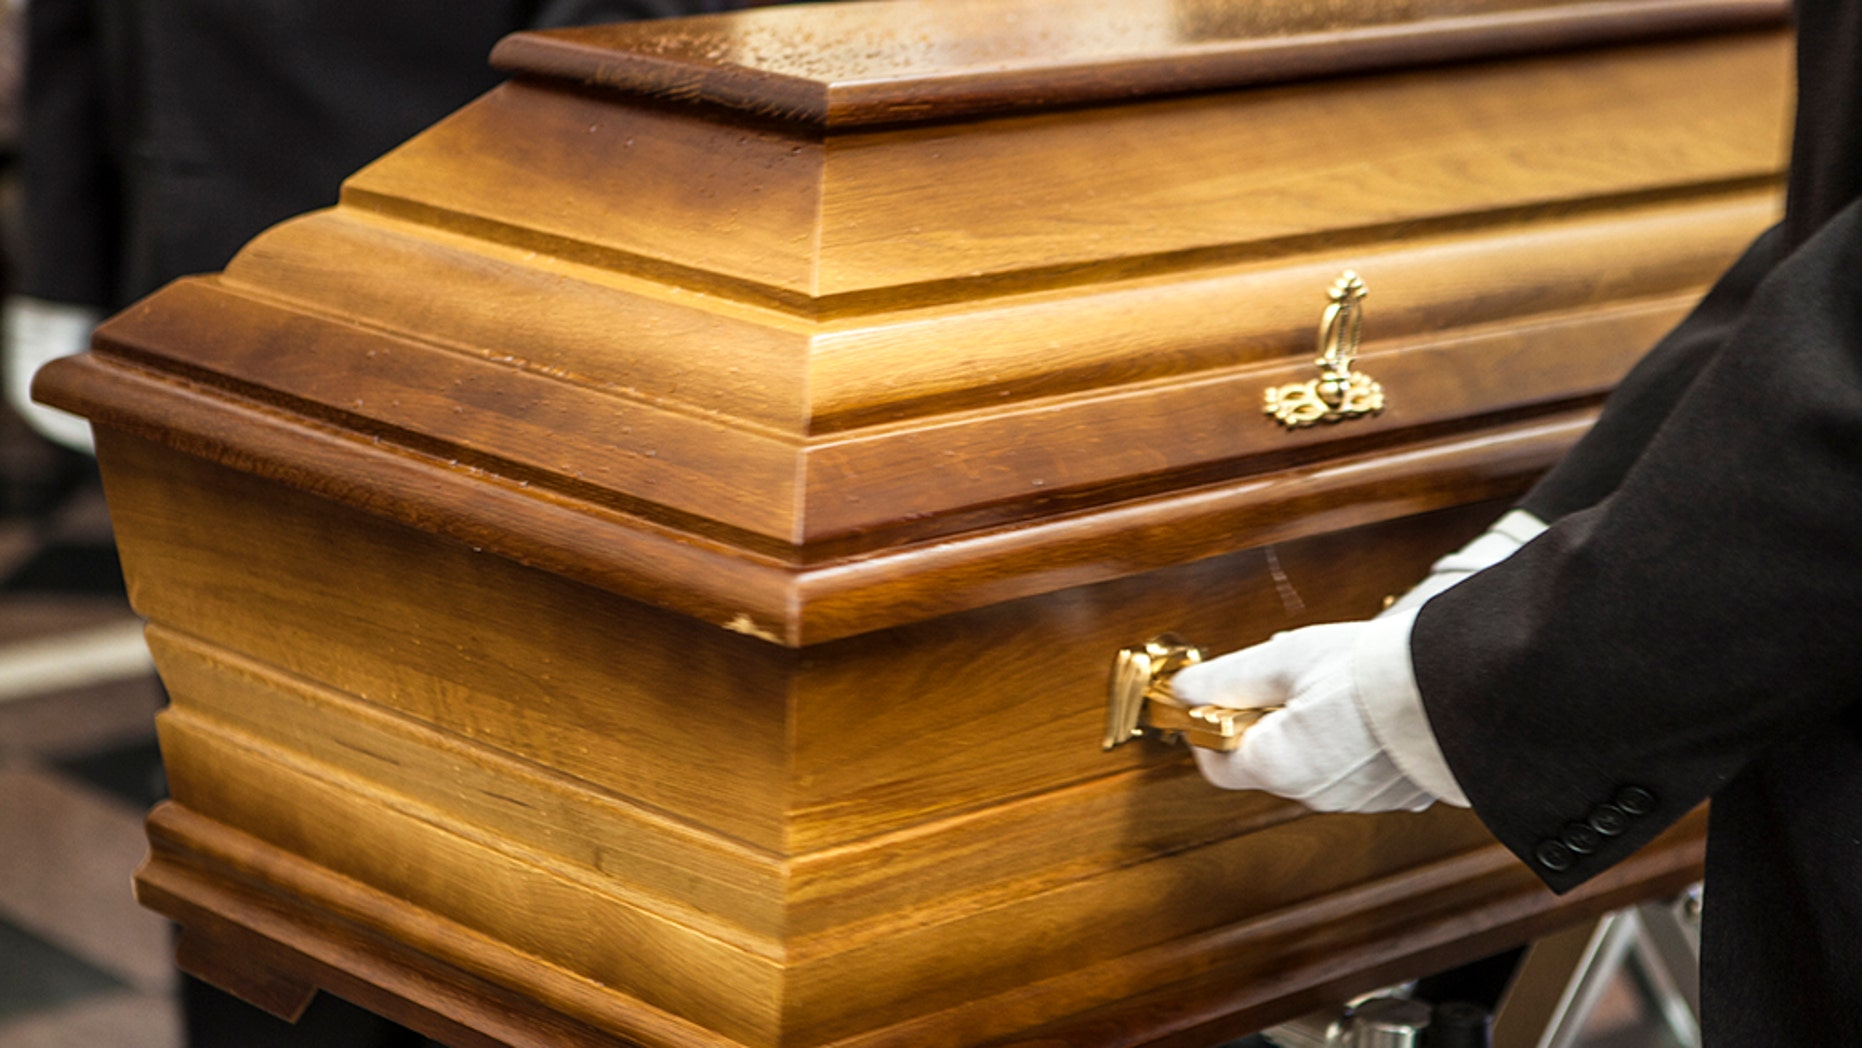 A man was crushed by his mother's casket in Indonesia on Friday, June 15, 2018.